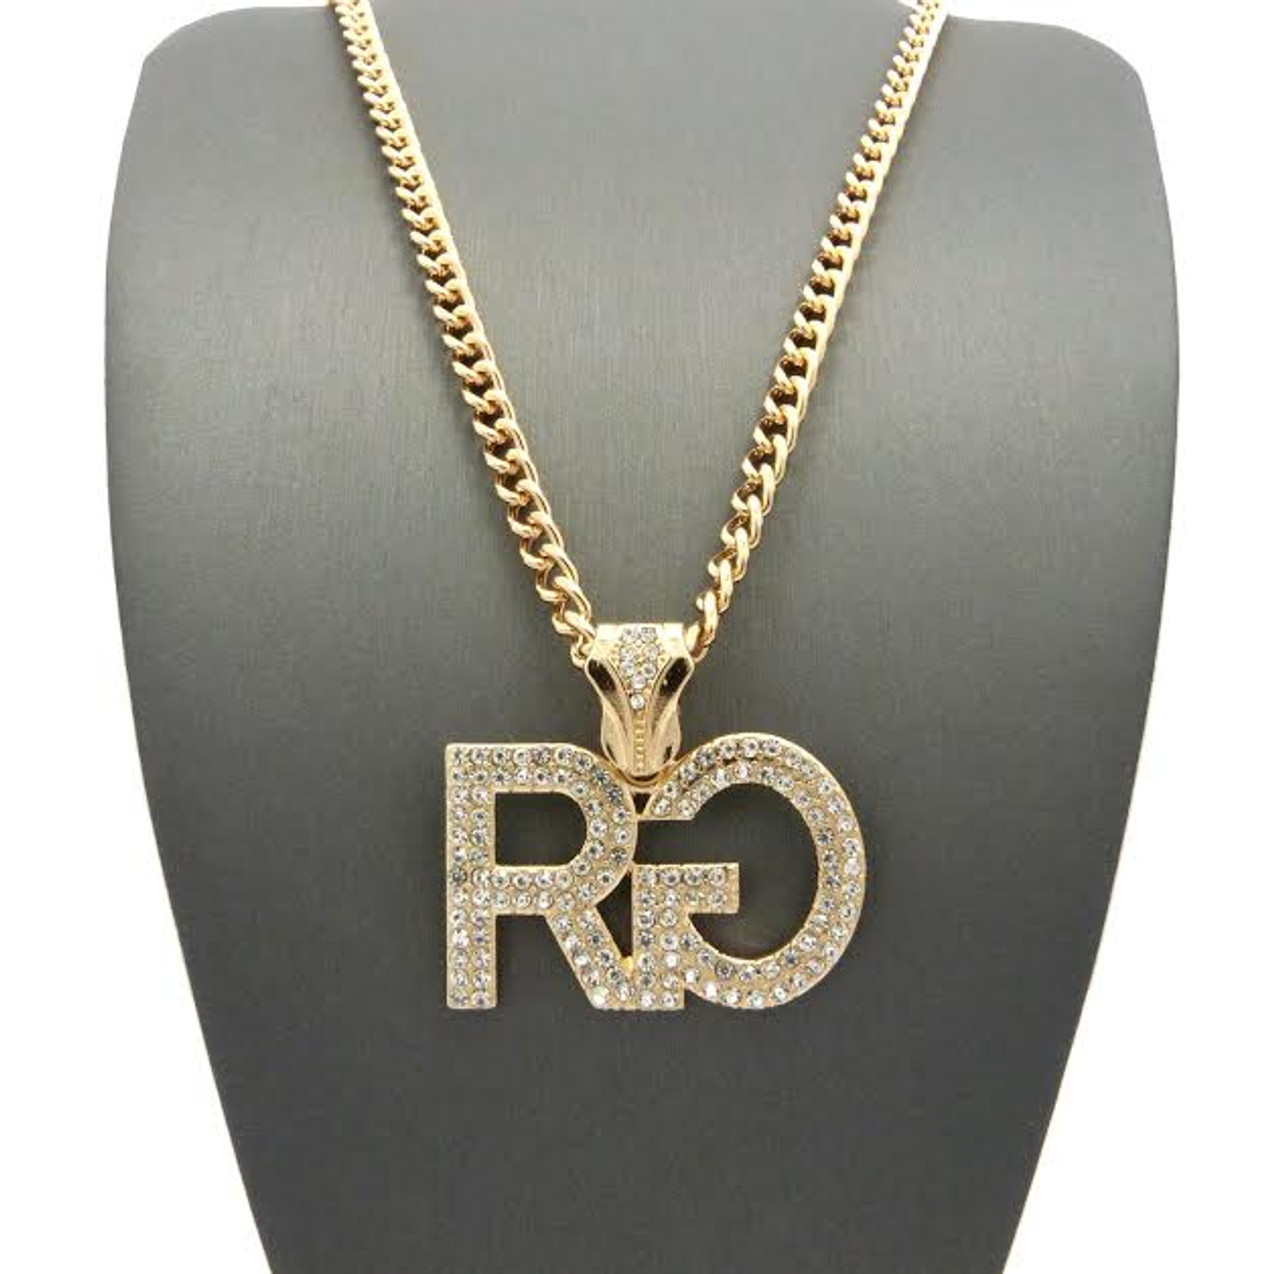 Rg hip hop pendant fully iced out wfree 36 chain the black bat rg hip hop pendant fully iced out wfree 36 chain aloadofball Choice Image